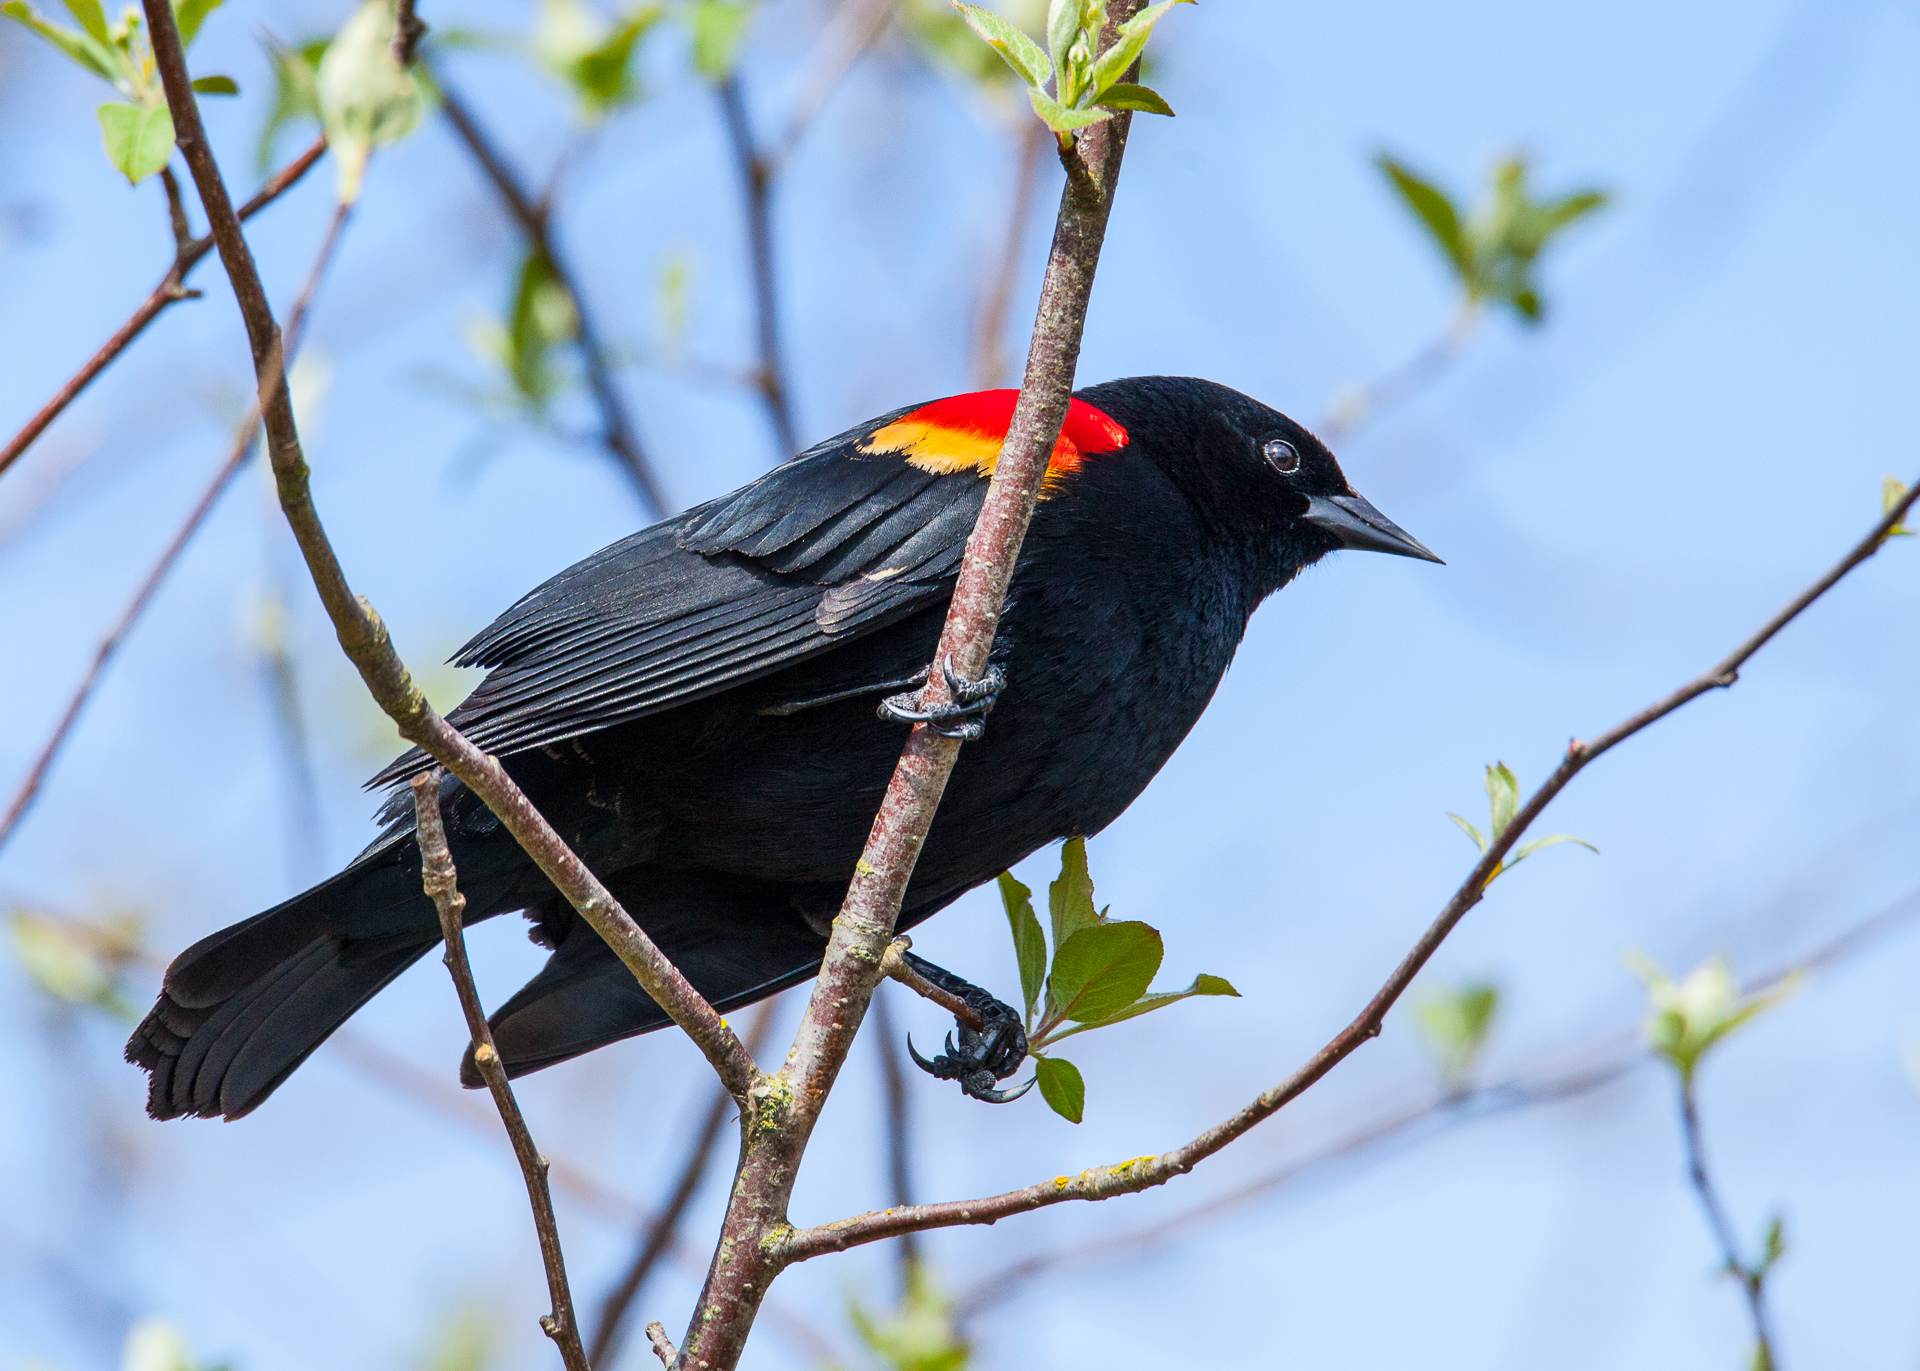 There were a few of the usual suspects around, including the red-wing blackbirds.